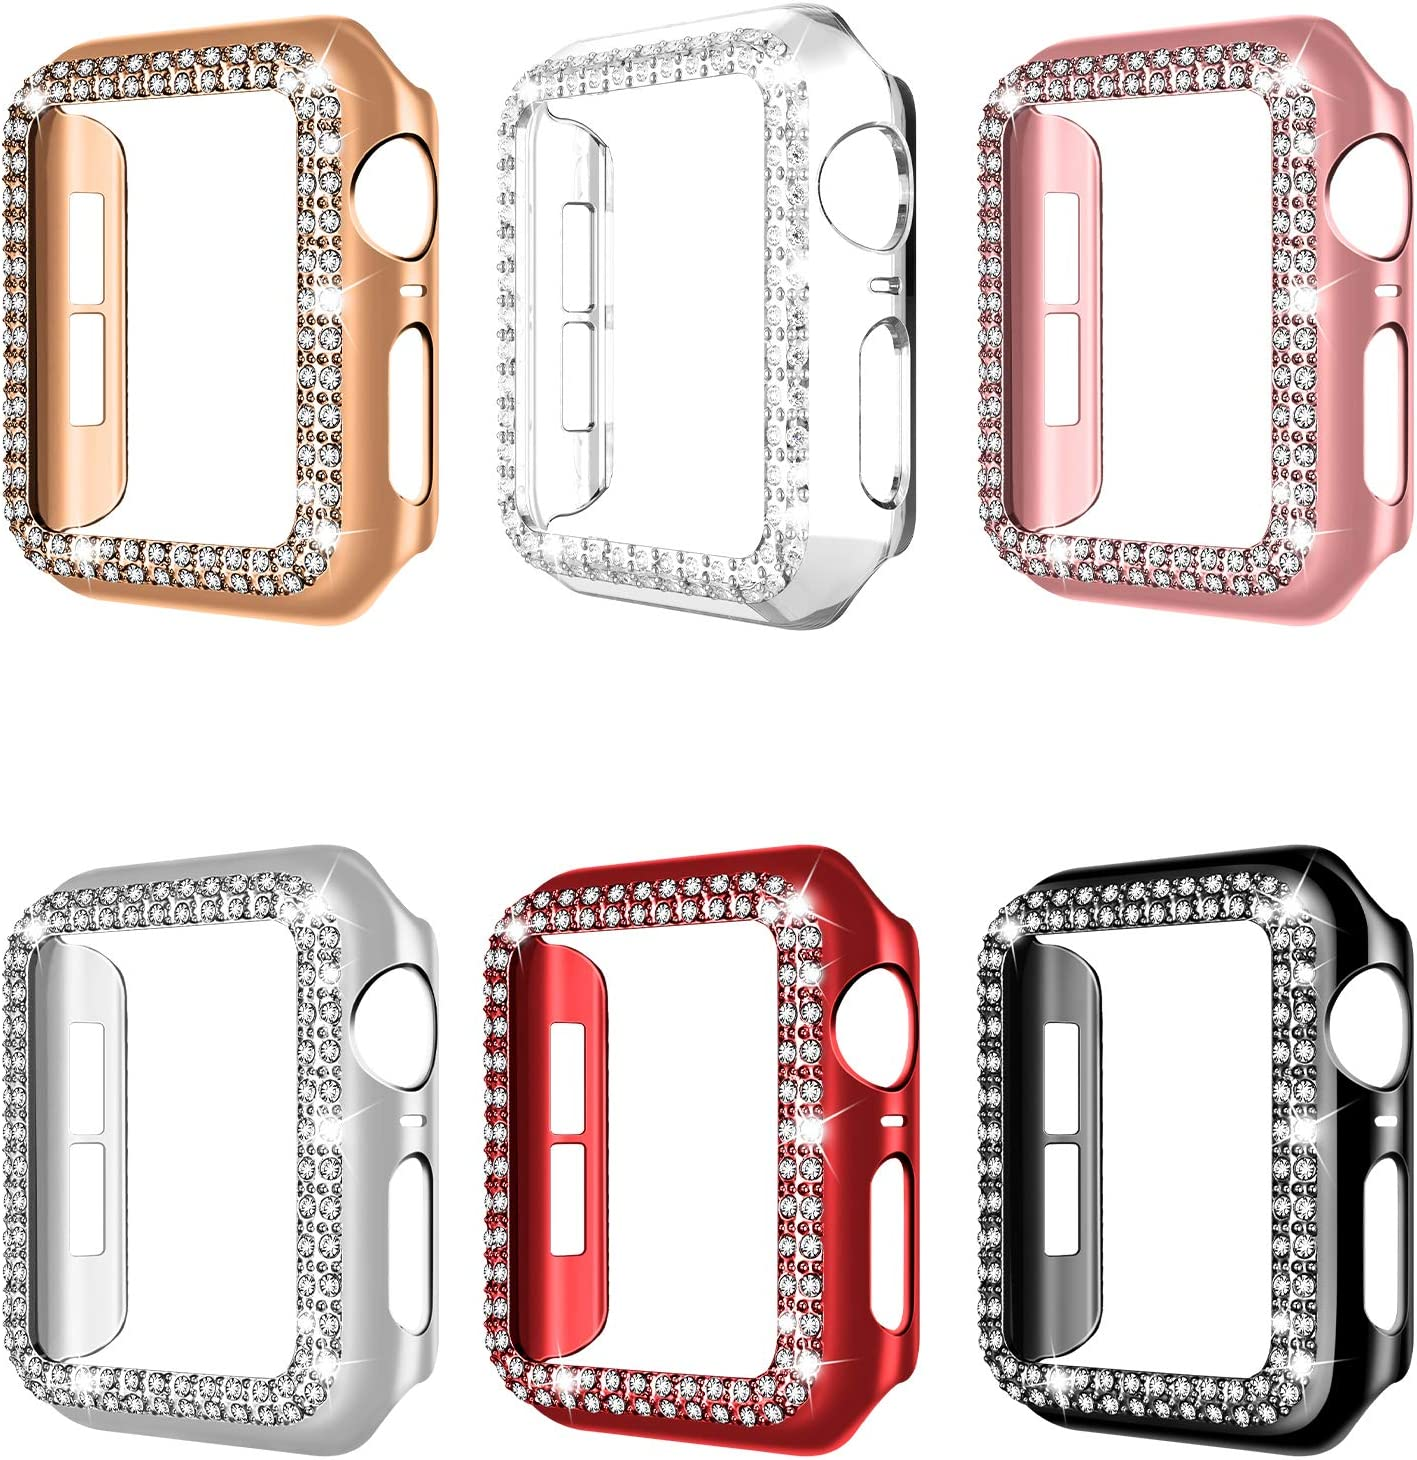 adepoy 6 Pack Apple Watch Case 40mm Series 6/5/4 SE Bling Rhinestone Apple Watch Protective Case Bumper Frame Screen Protector Case Cover for iWatch Series 40mm